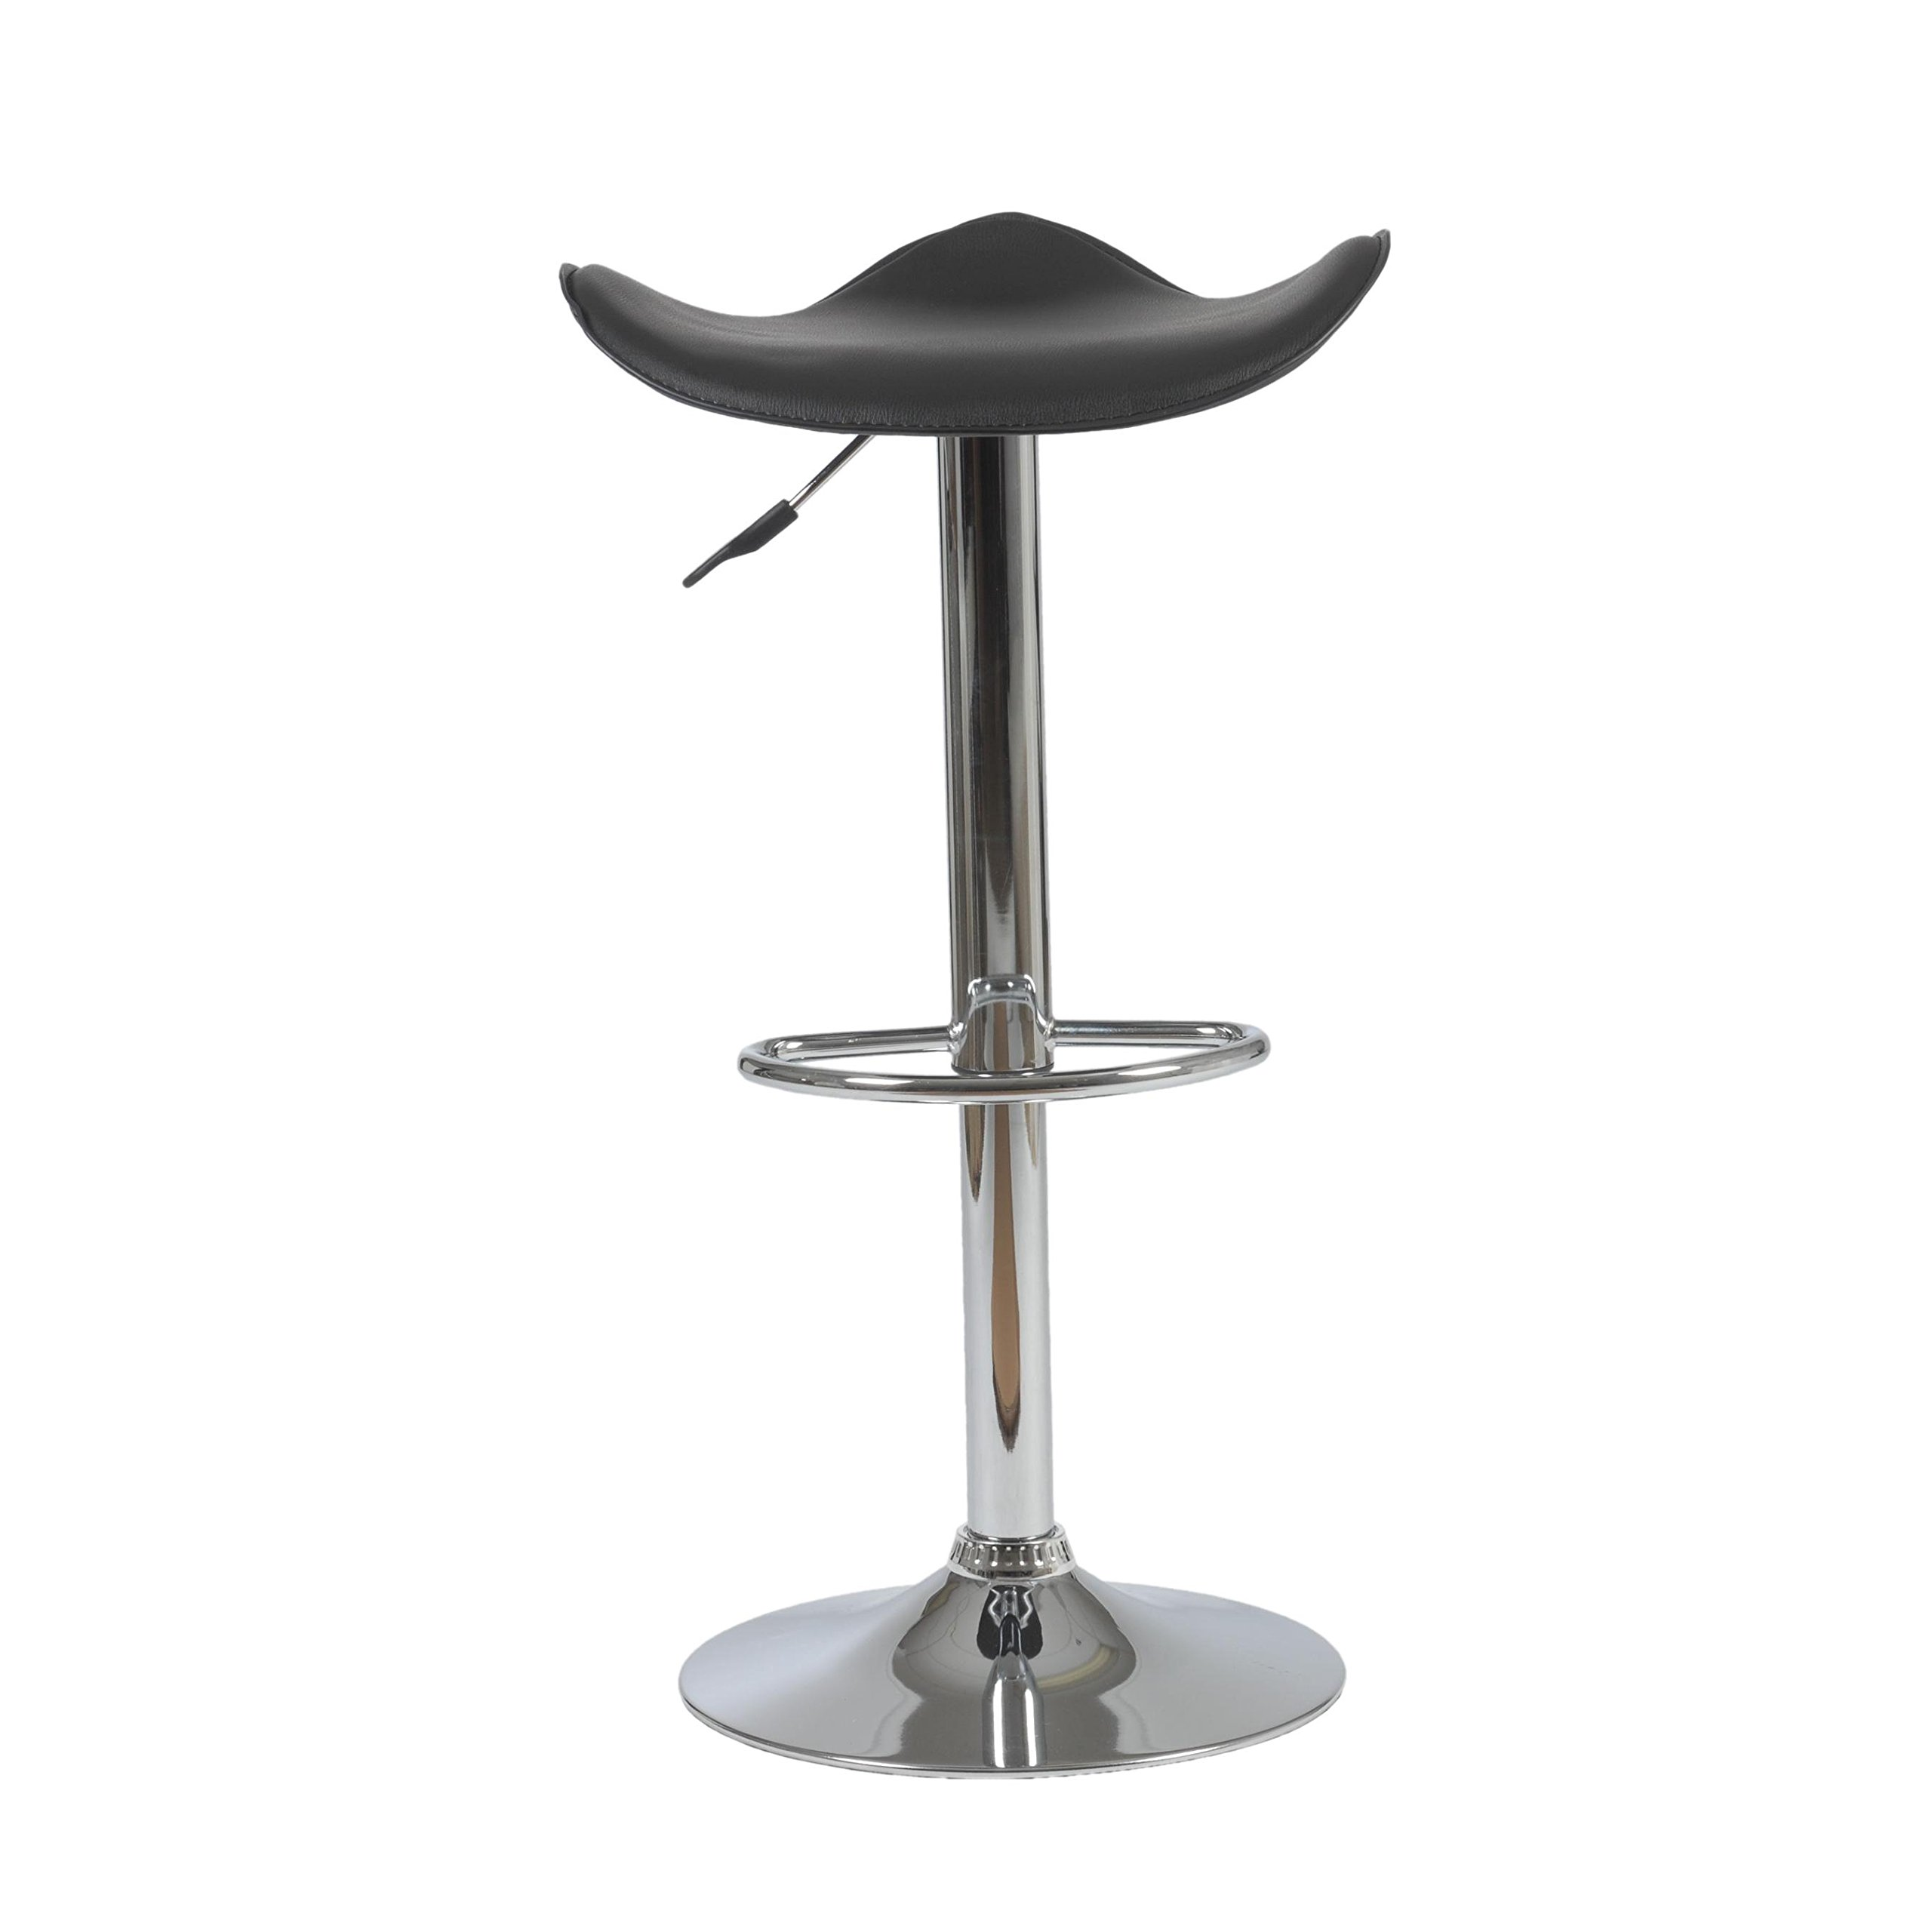 Eurø Style Fabia Height Adjustable Contemporary Stool, Black Leatherette Seat